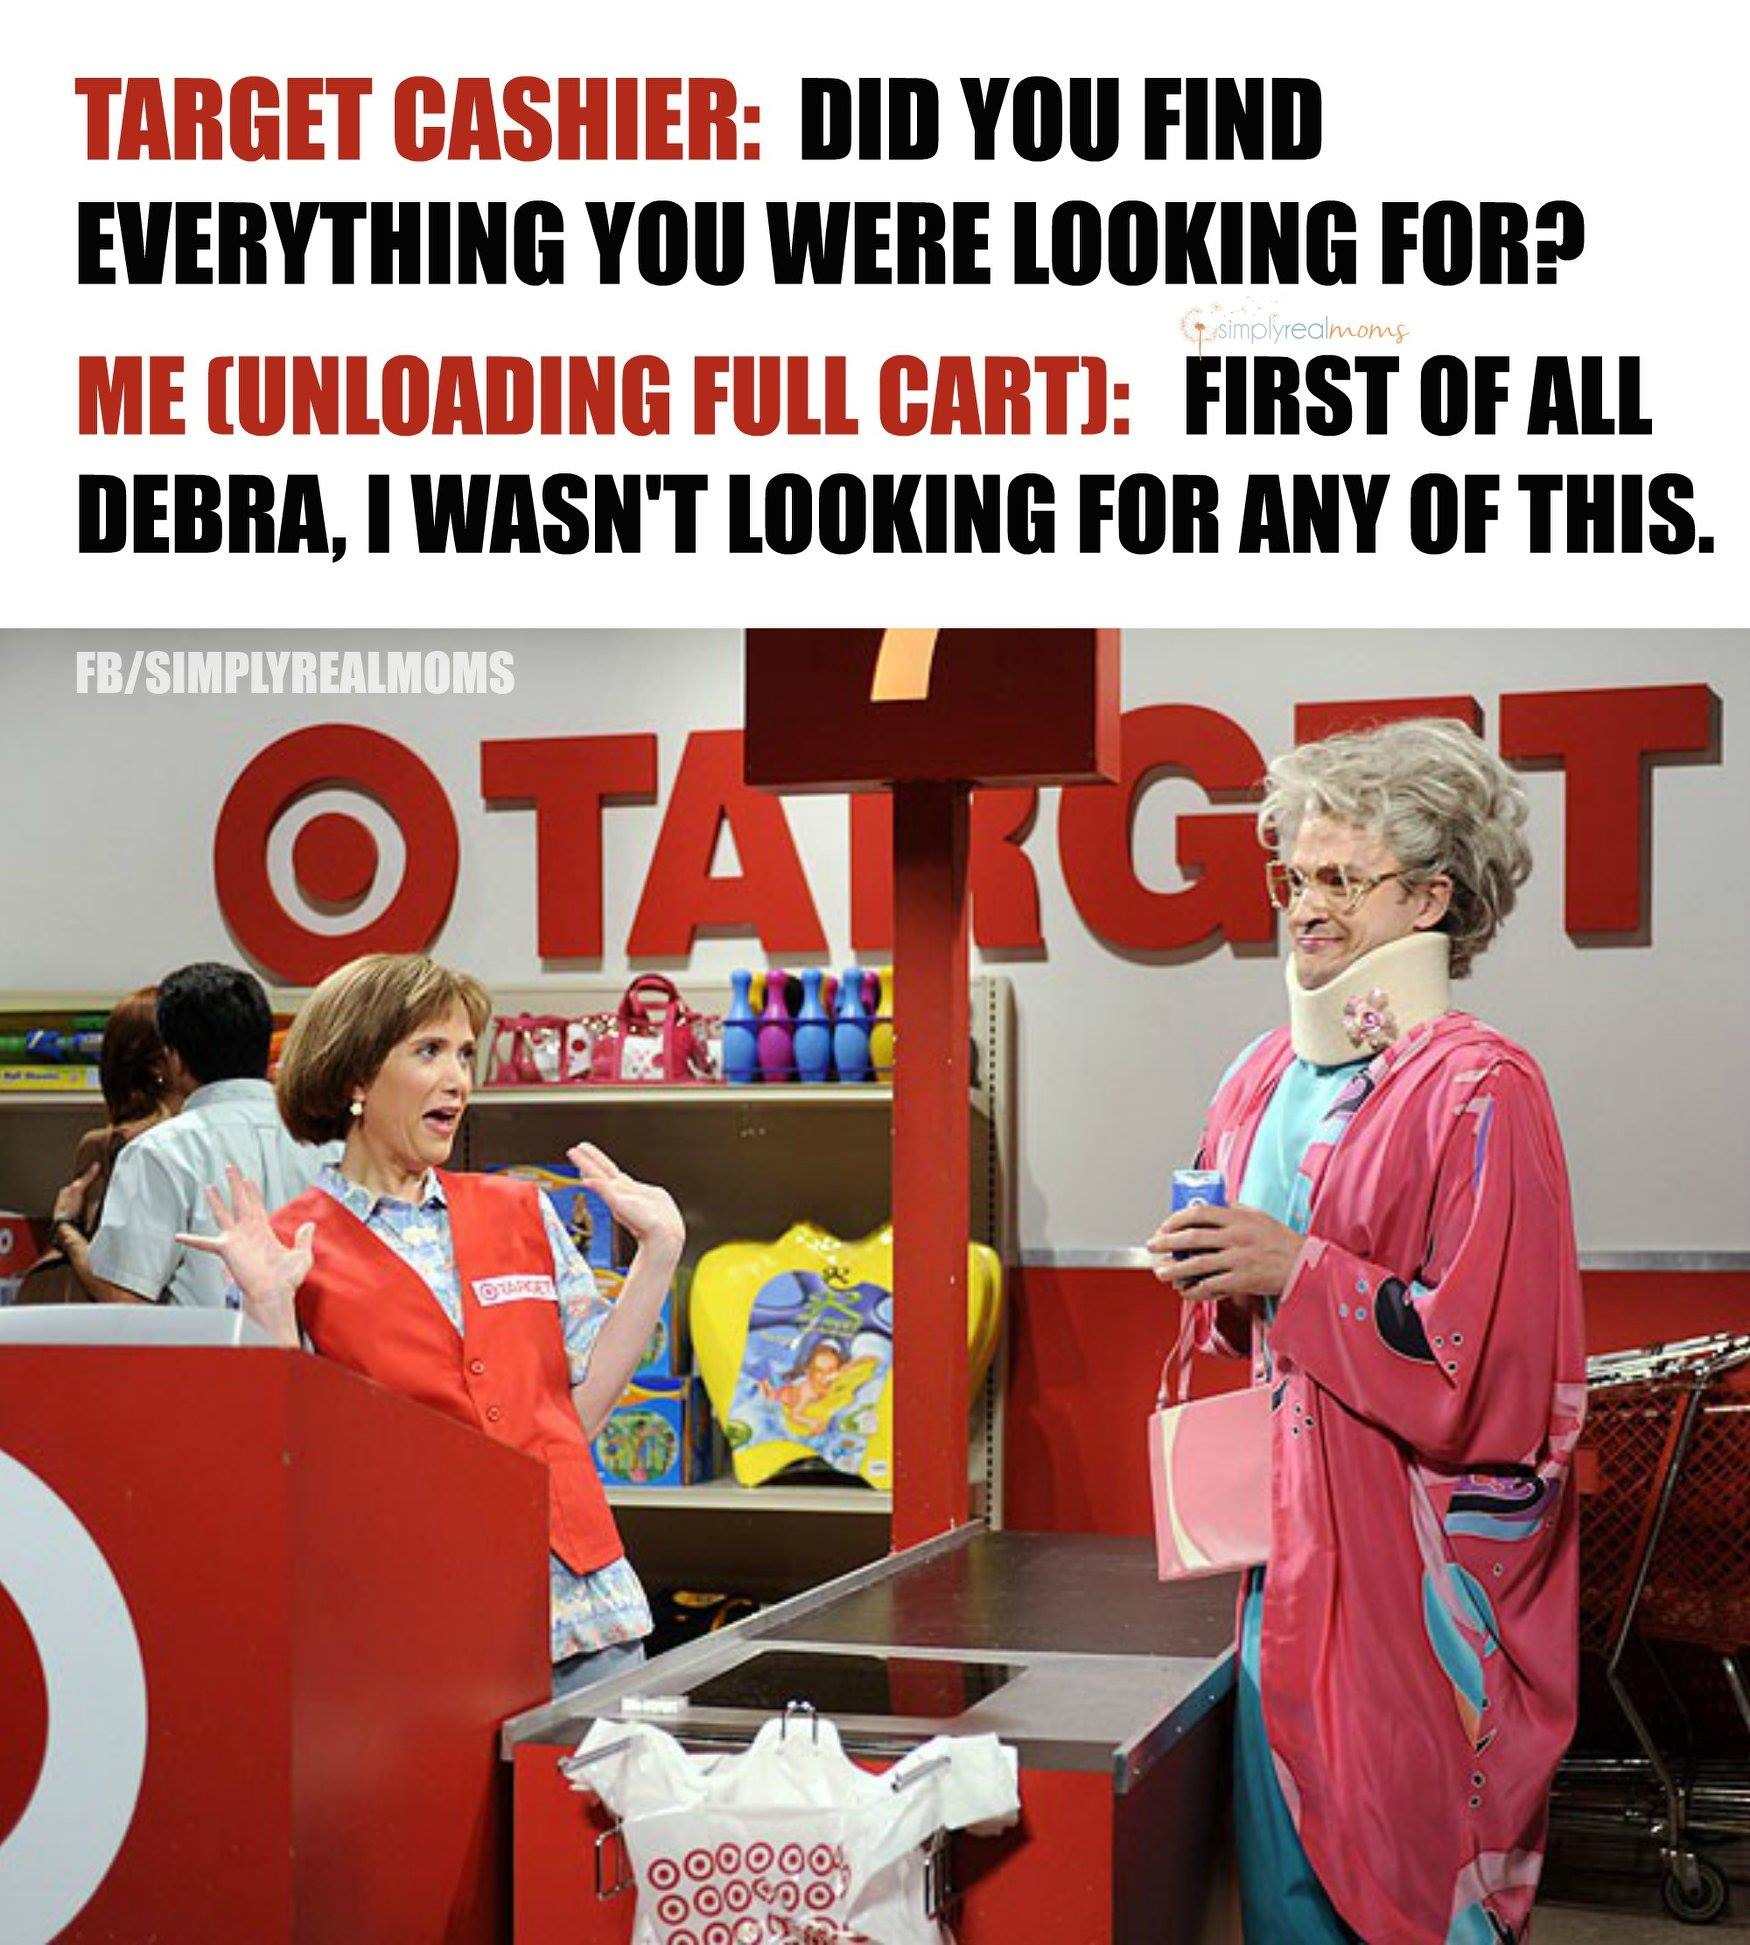 funny fun favorite mom quotes and memes that will make you laugh giggle and want more - target snl skit